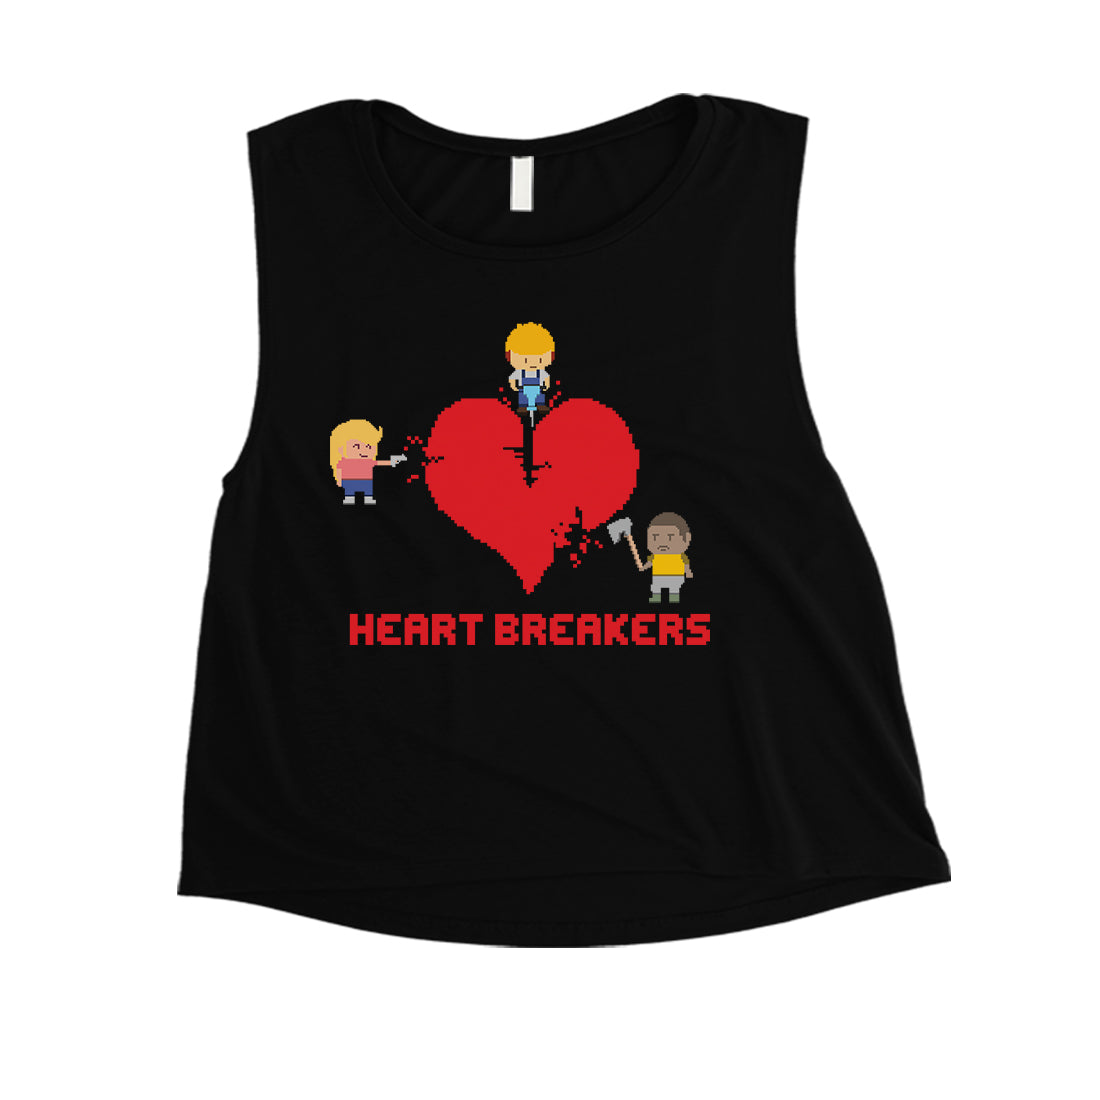 0028b8da96bb07 Heart Breakers Womens Cute Graphic Workout Crop Top Gift For Her ...